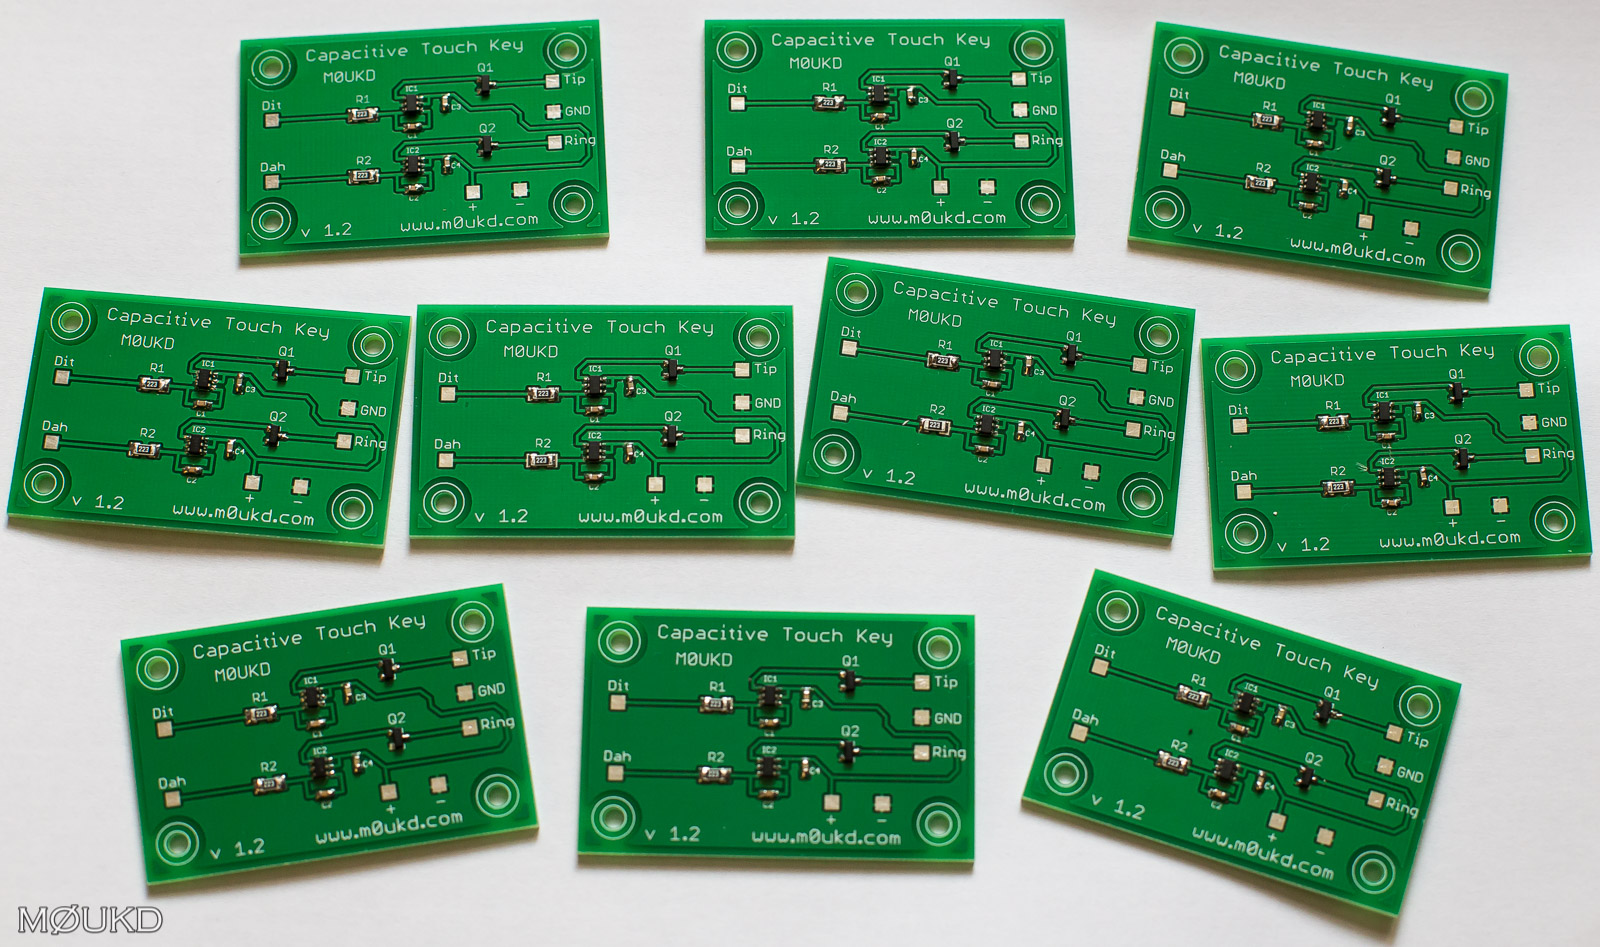 New capacitive touch key boards